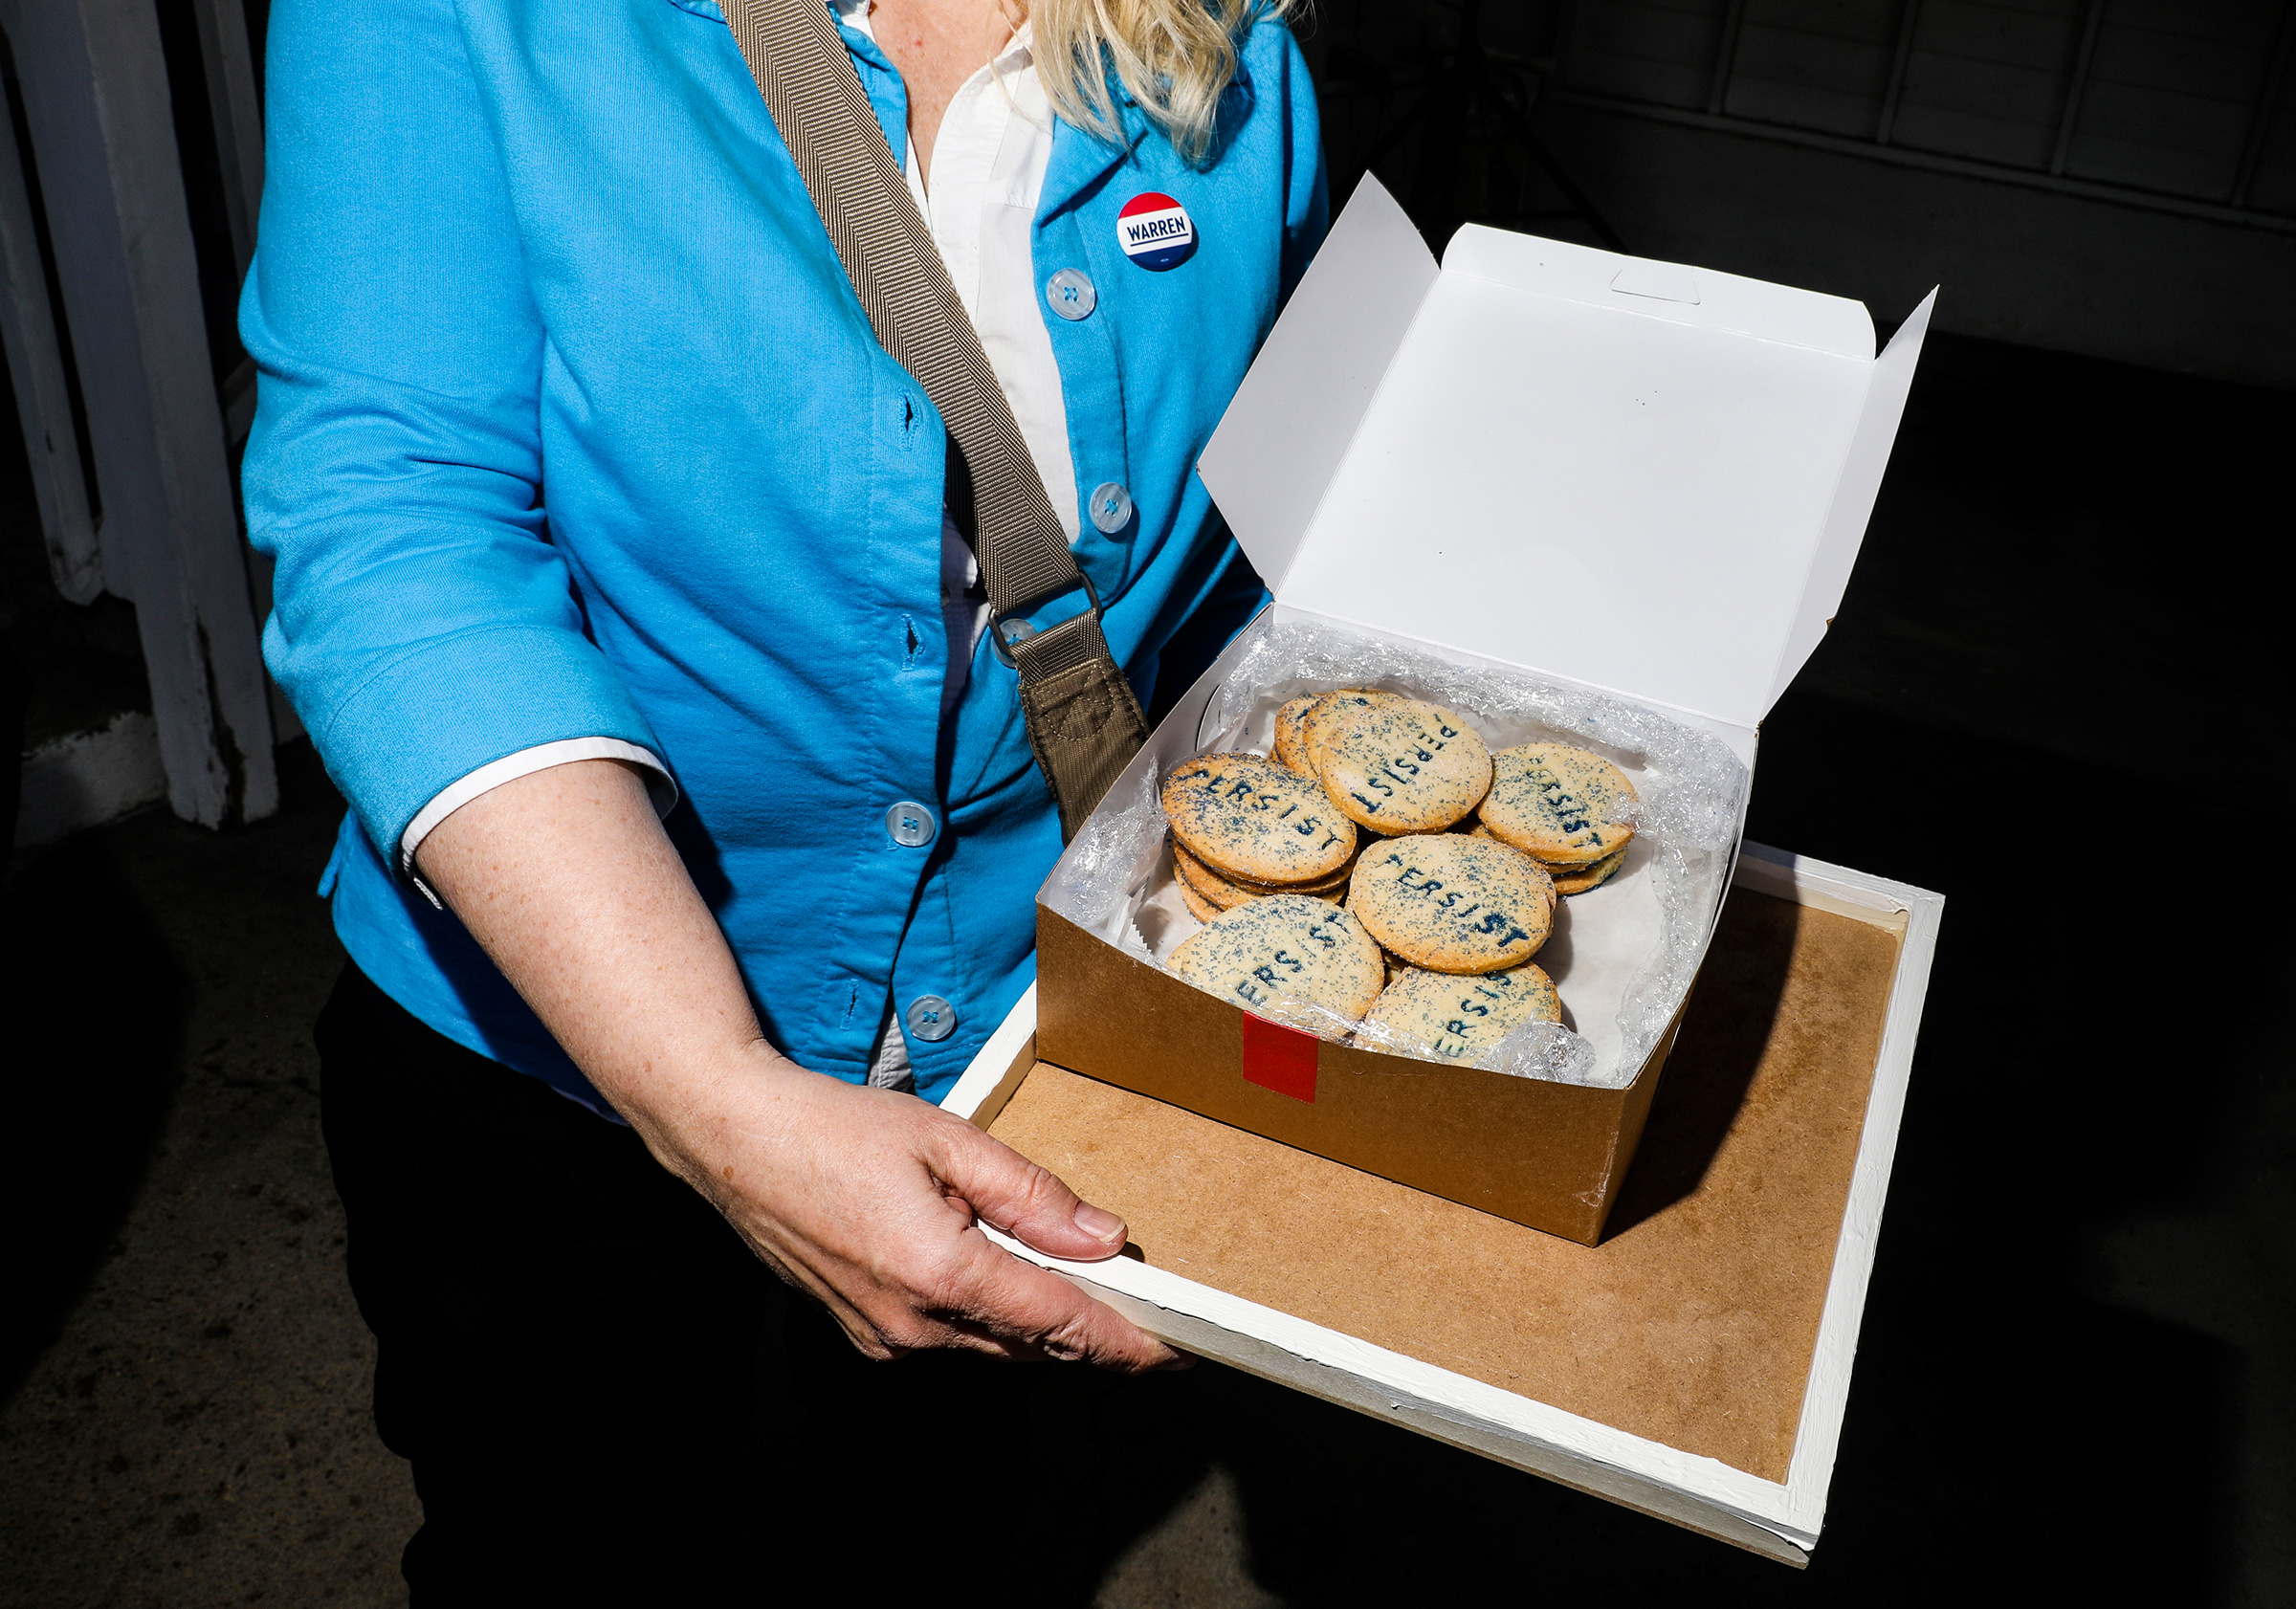 Warren supporter Barbara Weniger came all the way from Boston with cookies for the Iowa Falls House Party on May 3.